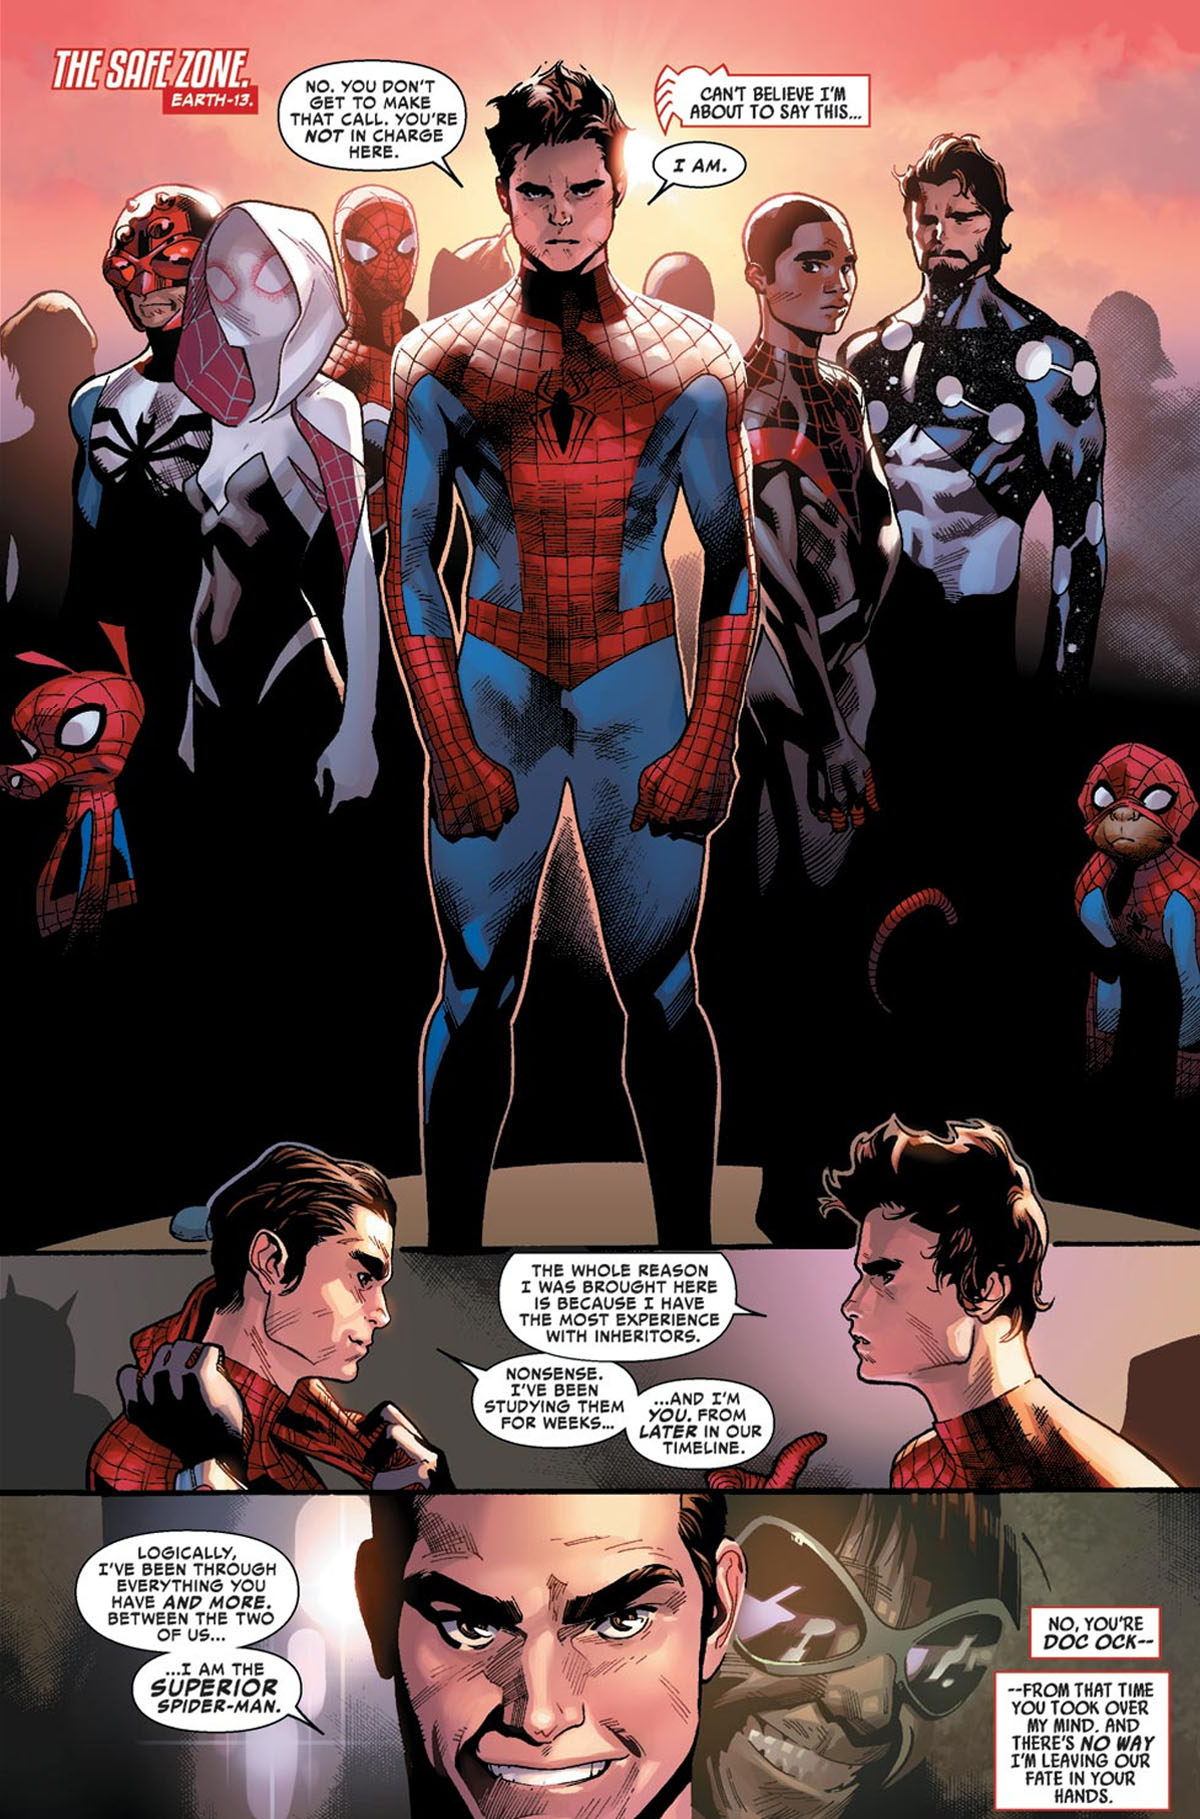 5: Spider-Verse – Amazing Spider-Man Vol. 3 #9–15